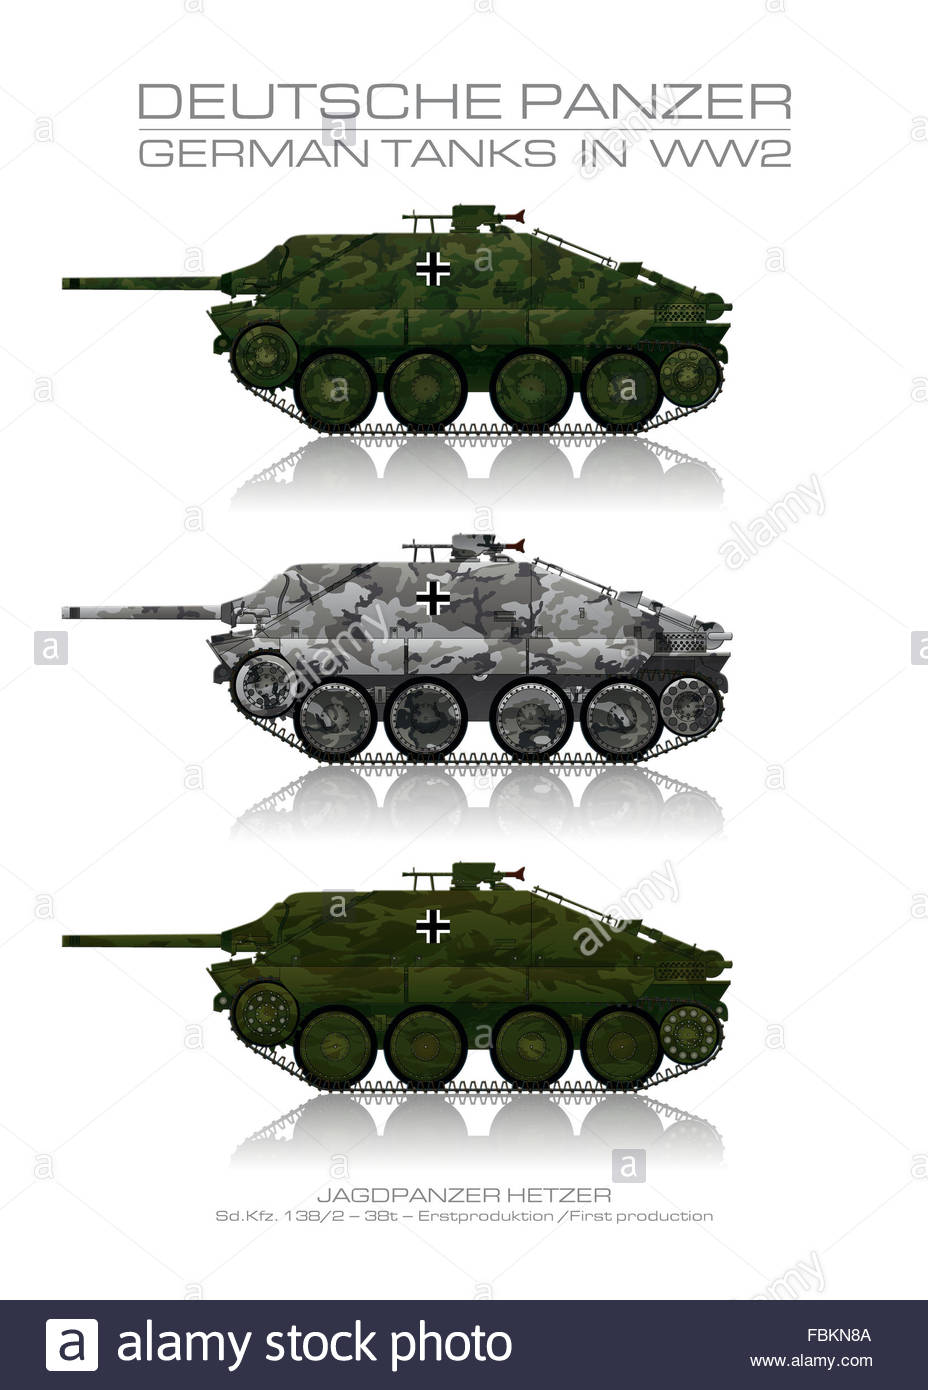 Sd. Kfz. 138/2 - German tank - Panzer. Jagdpanzer 38(t) - Hetzer - Early production. The German Wehrmacht. - Stock Image